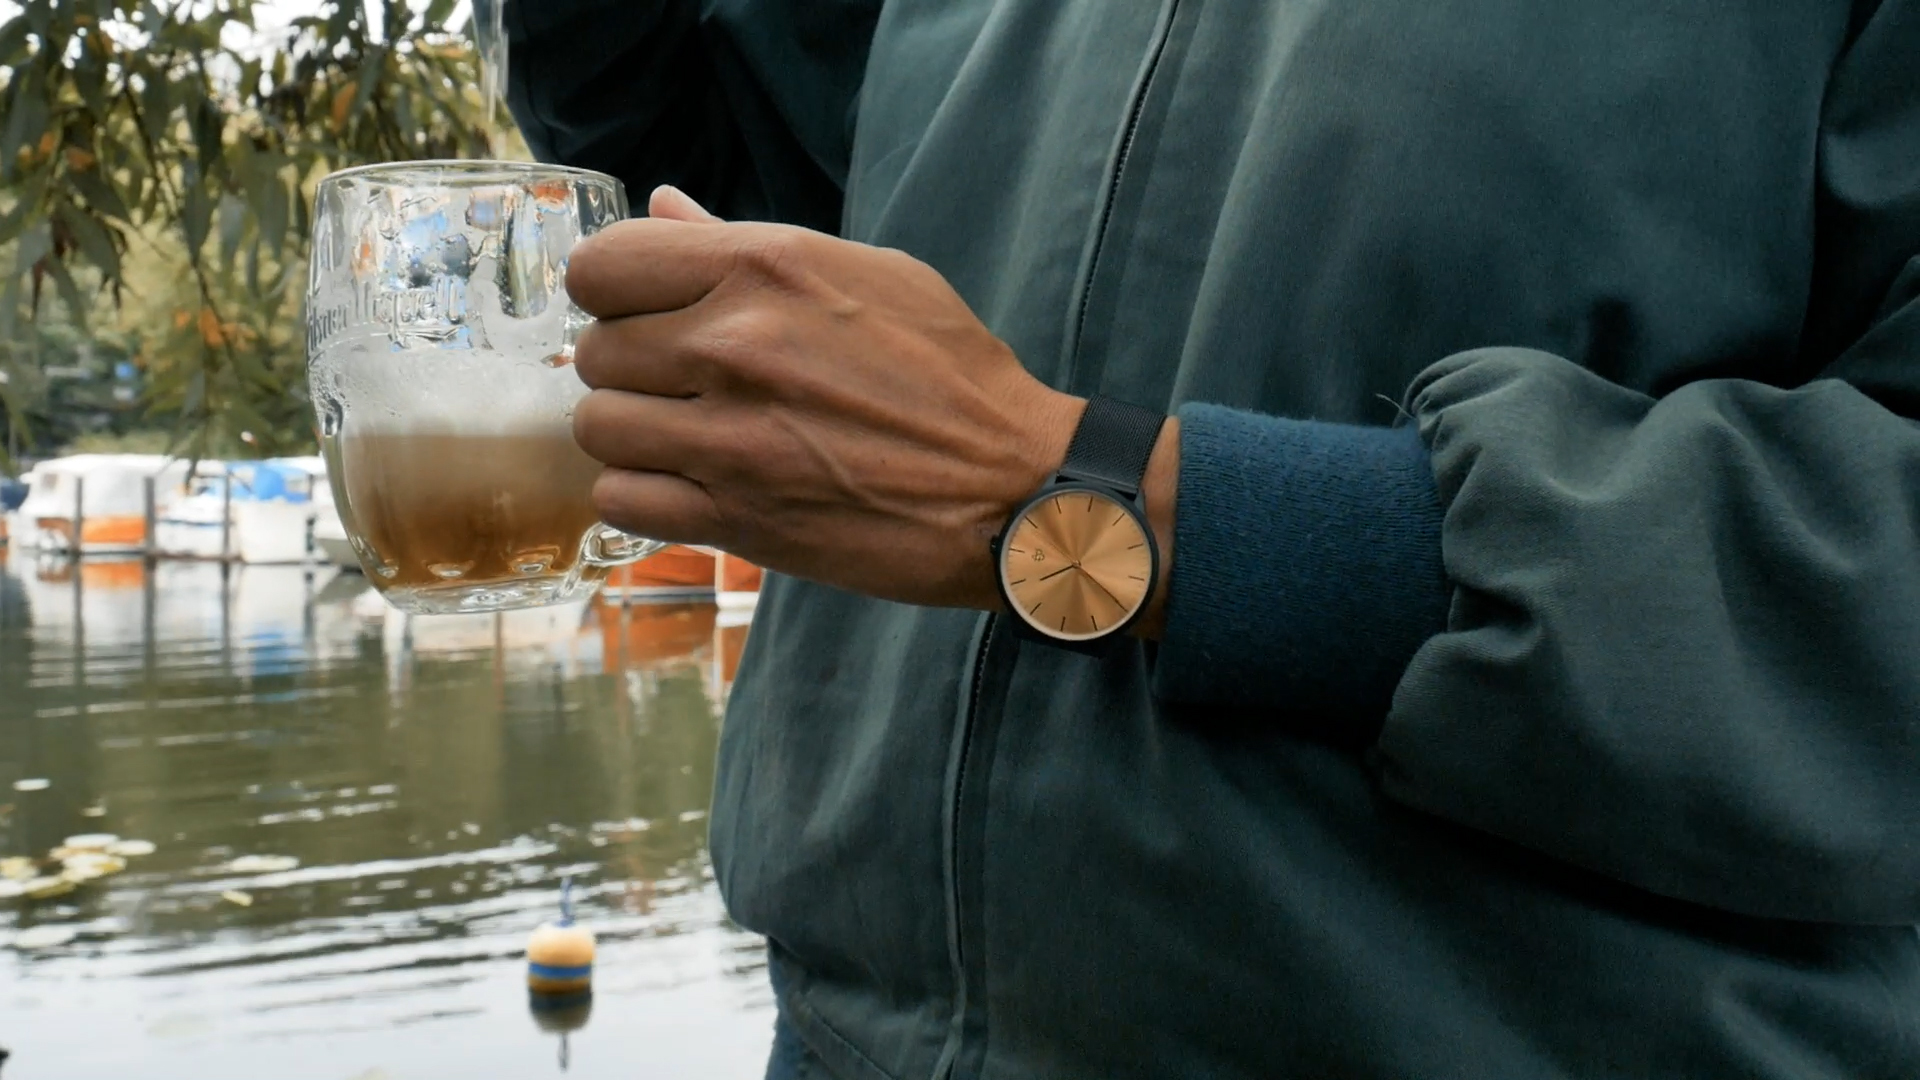 Nando – The watch your watch could be